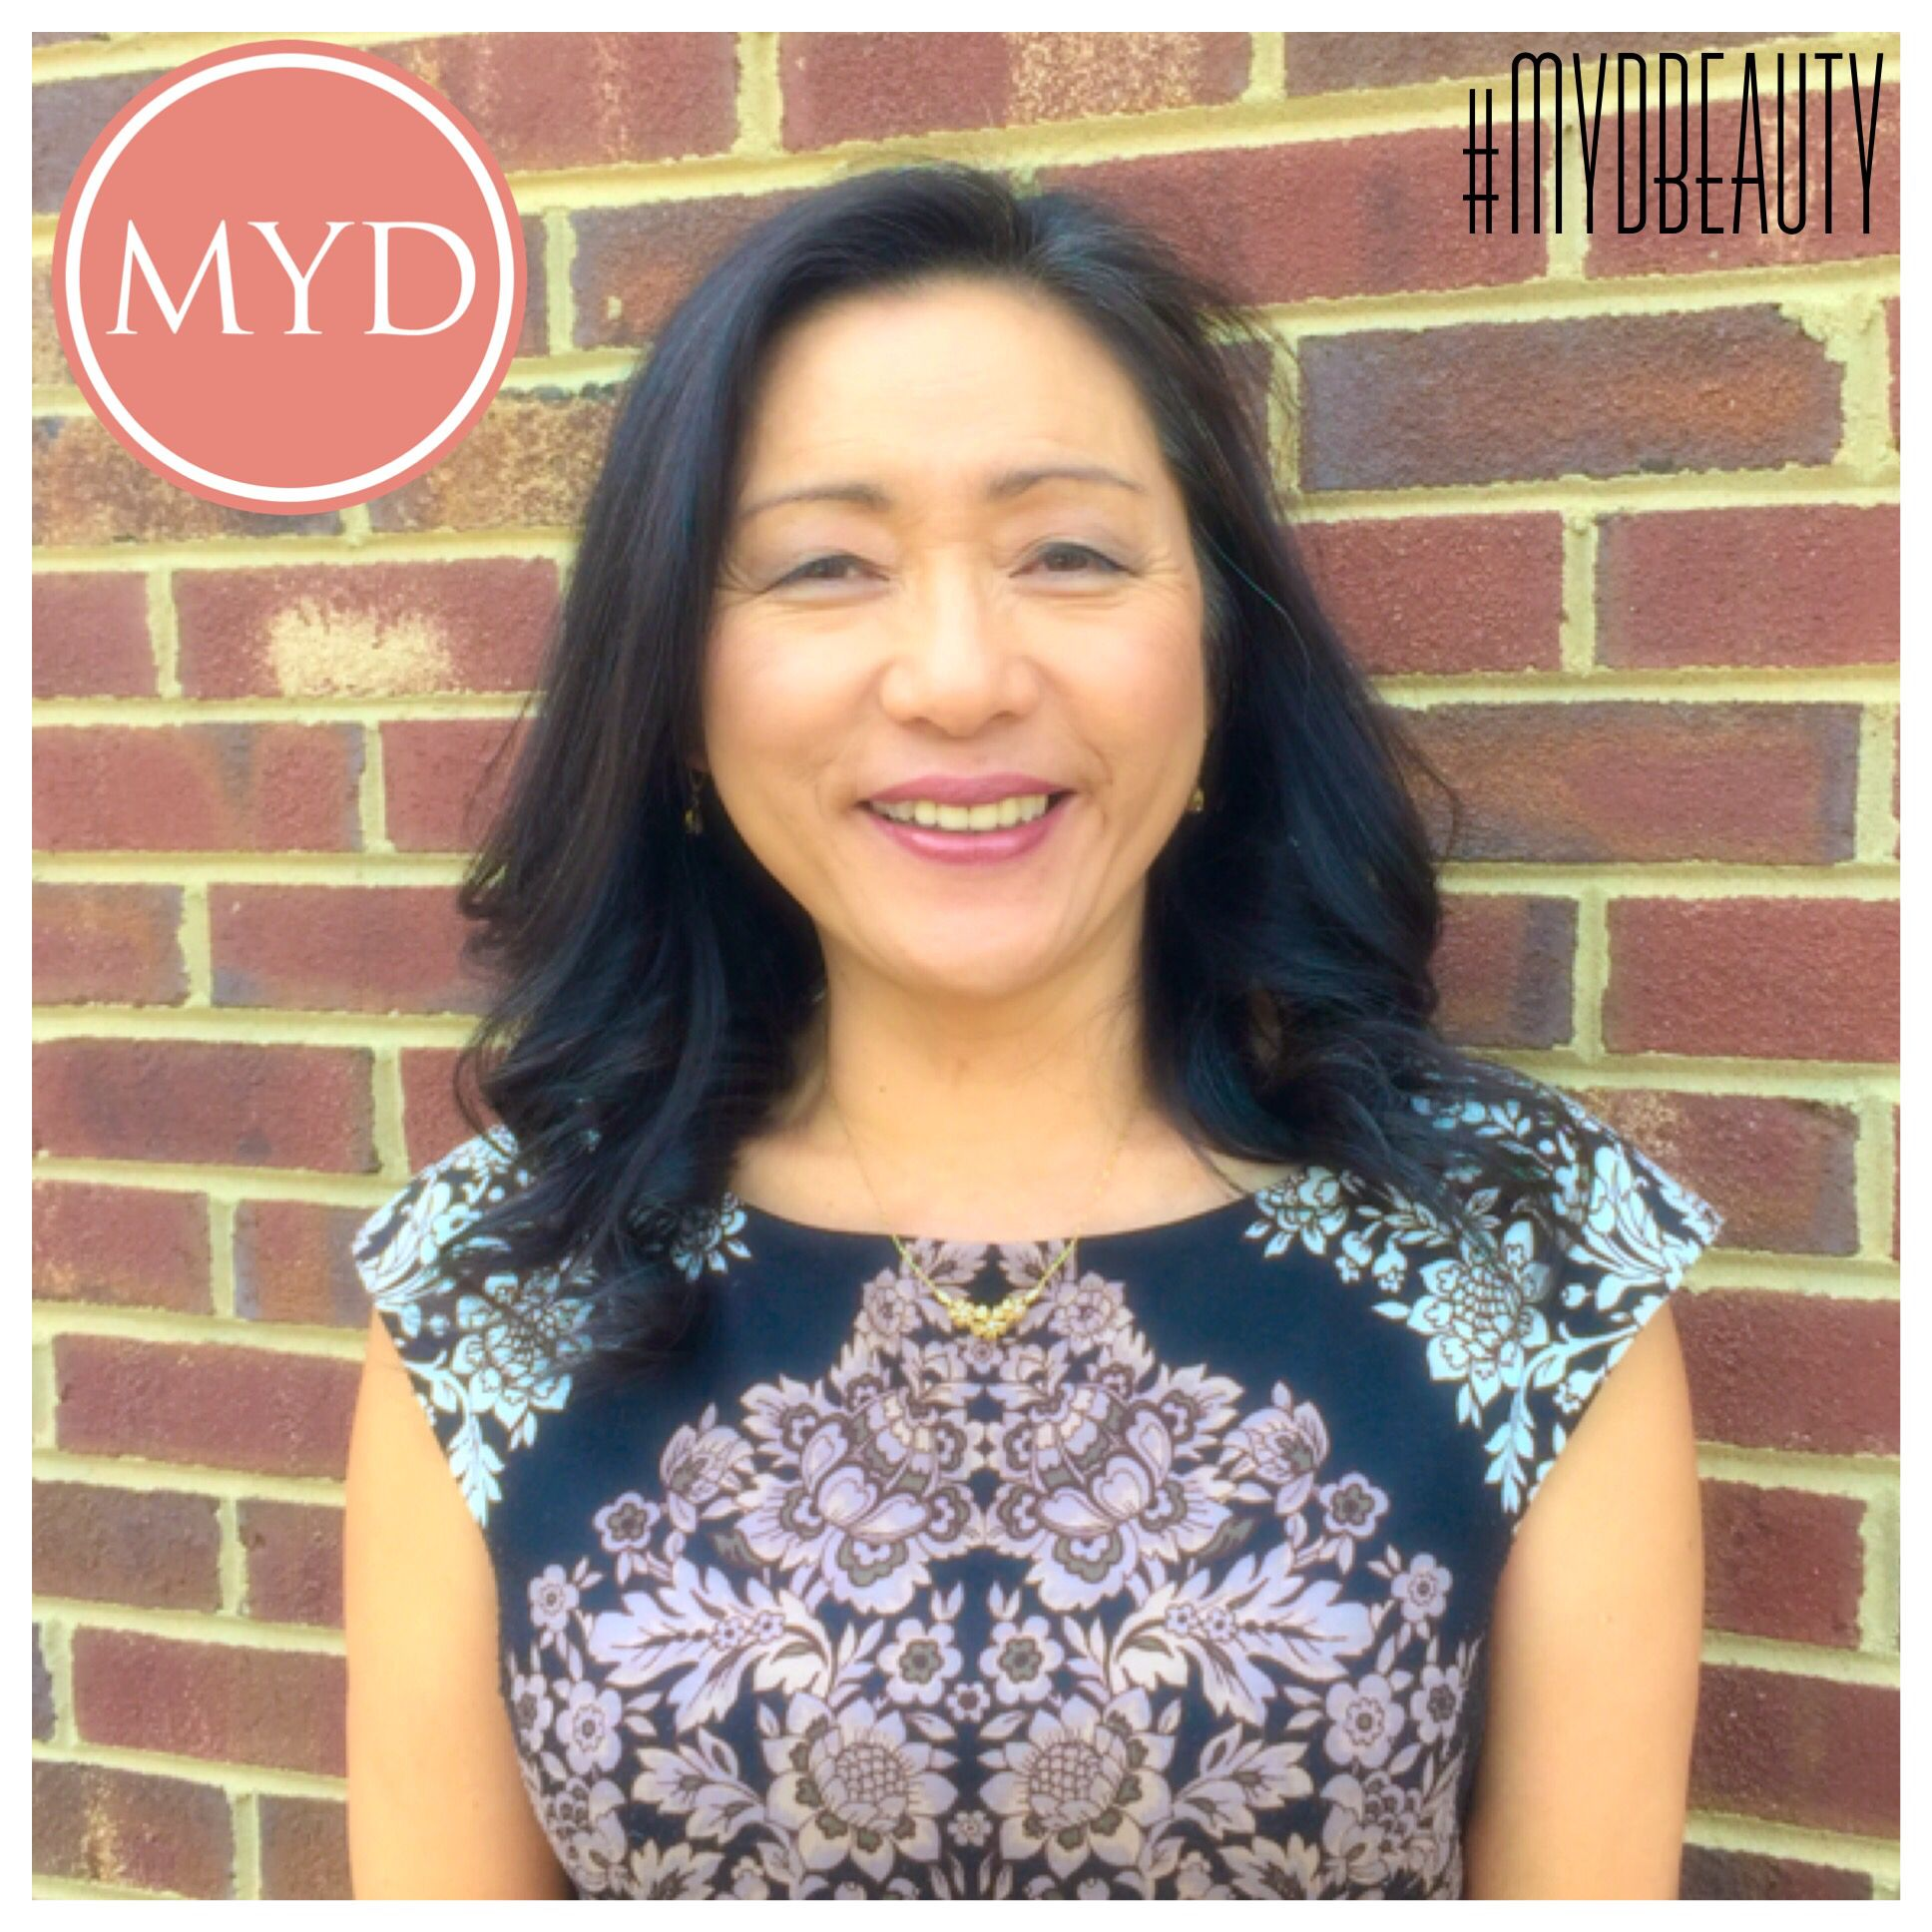 Mother of the Bride hair and makeup by Makeup for Your Day. #hair #airbrush #makeup #lashes #wedding #bride #southernwedding #makeupartist #hairstylist #mydbeauty #asianmakeup #asianwedding #multiculturalwedding